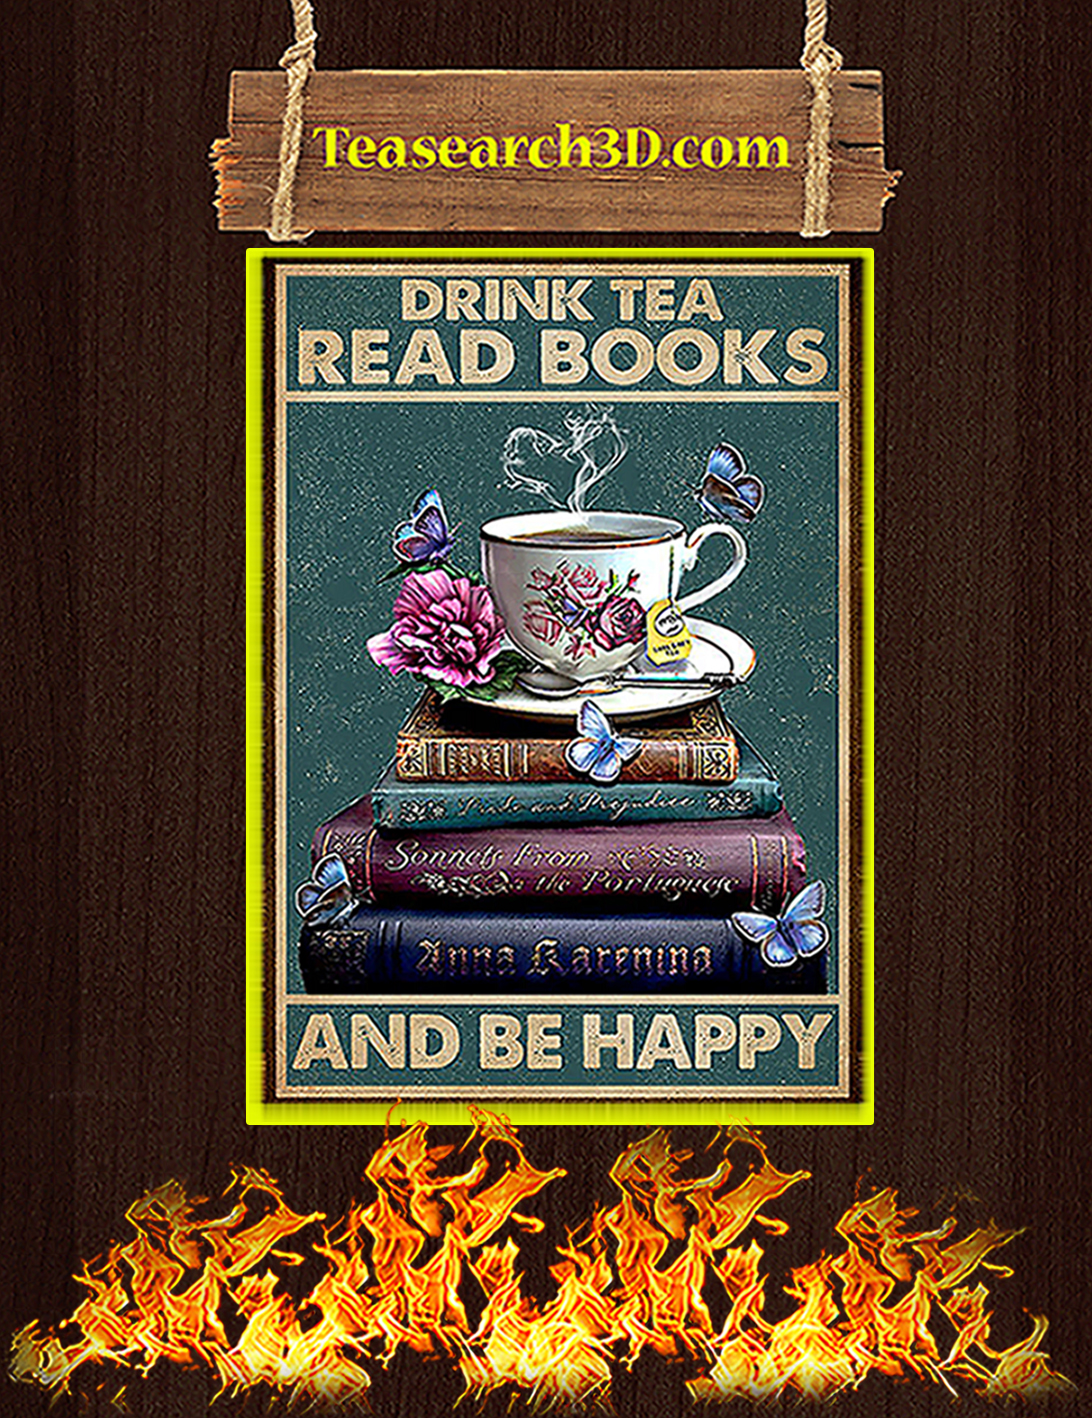 Drink tea read books and be happy poster A2